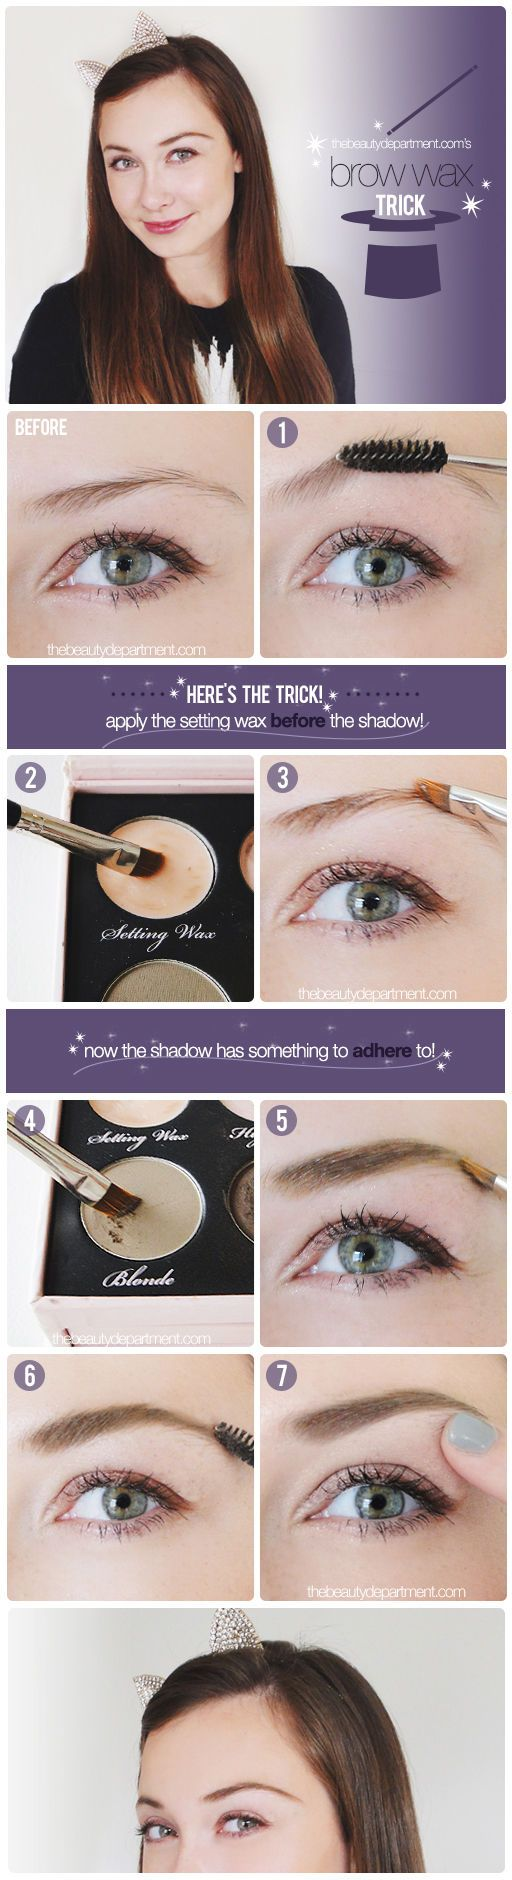 Tame your brows with this comprehensive how-to. #beauty #makeup #eyecare